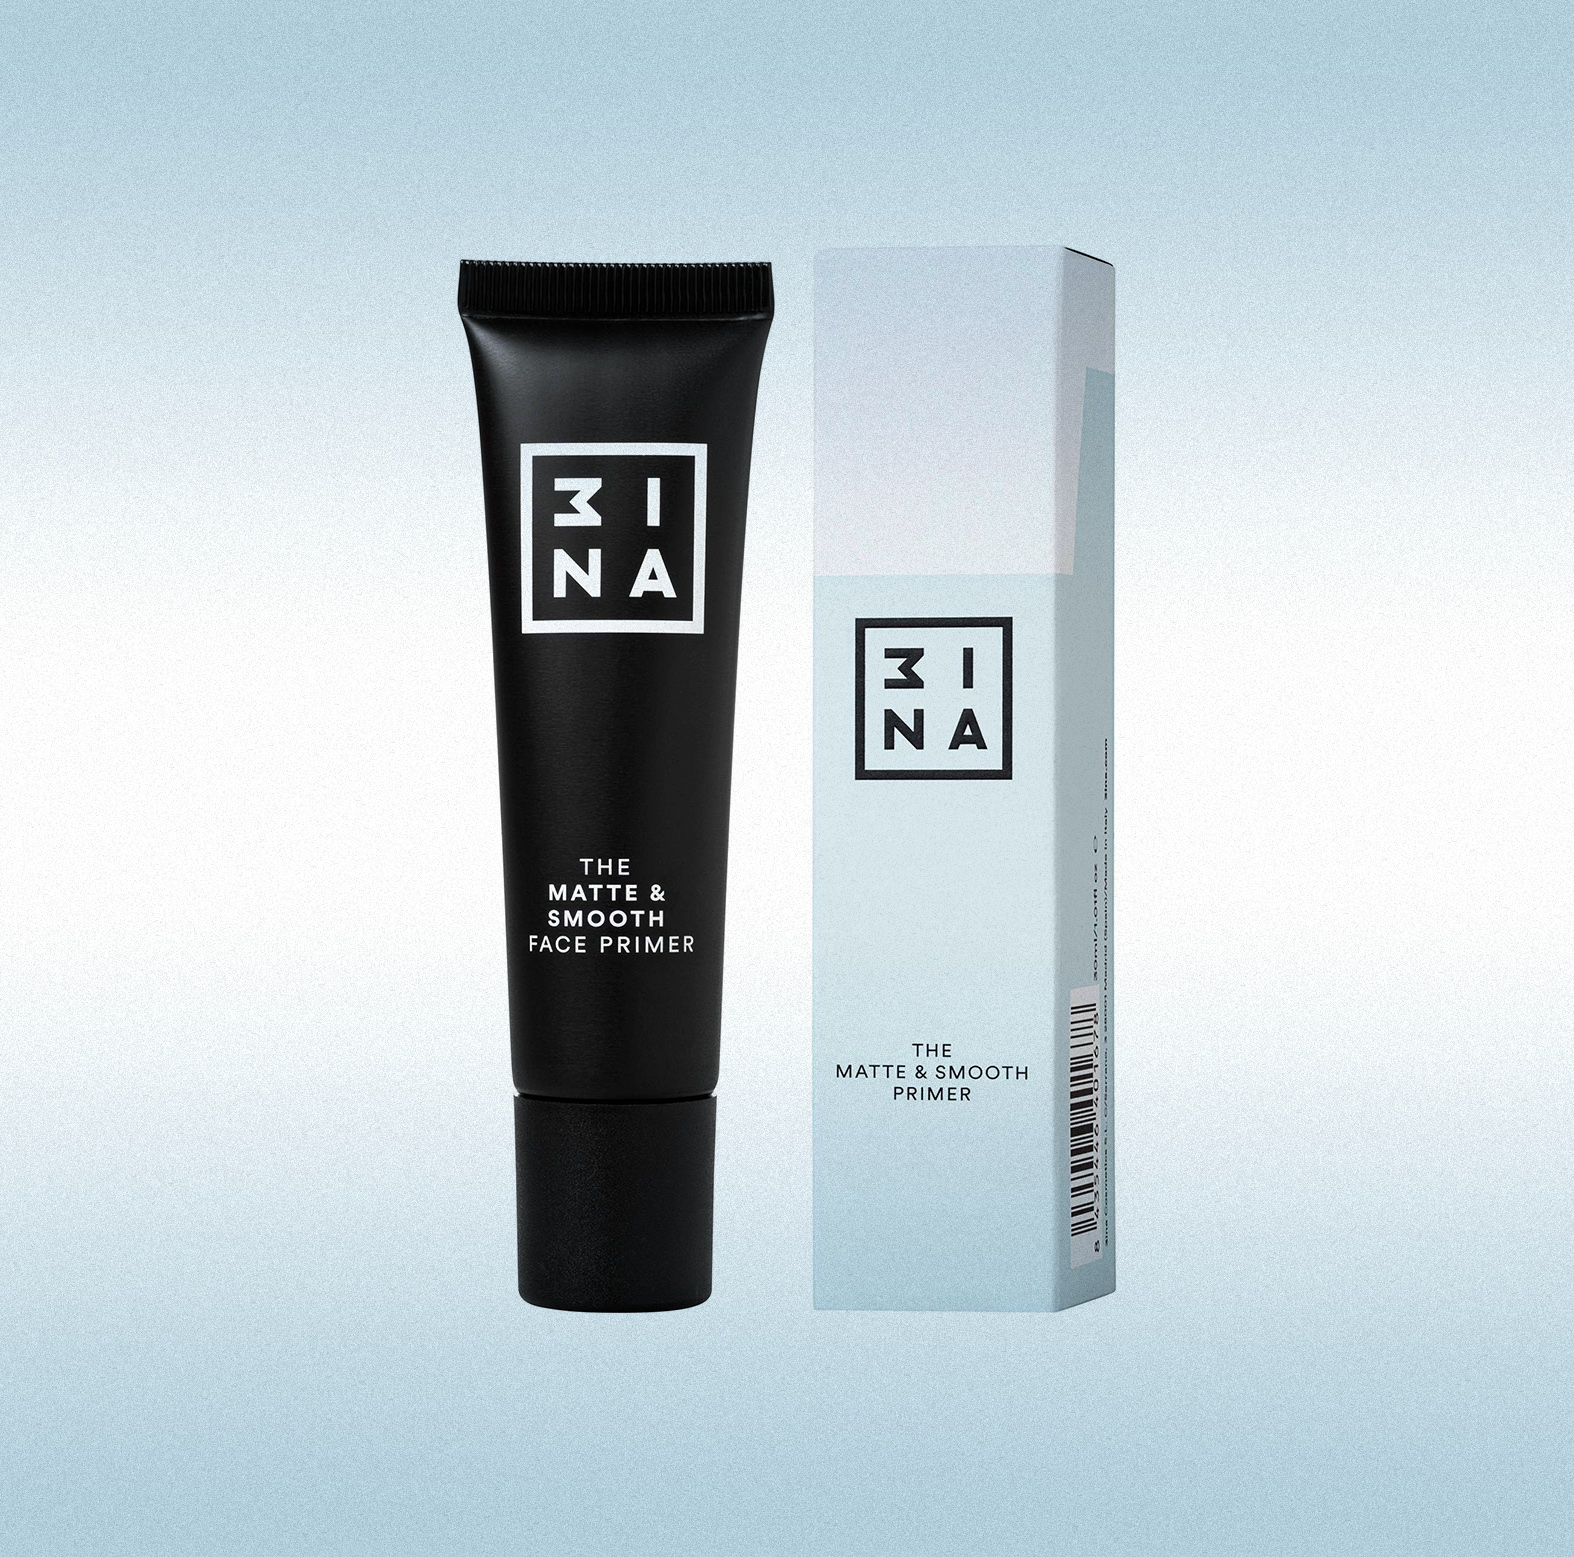 3INA the matte & smooth primer